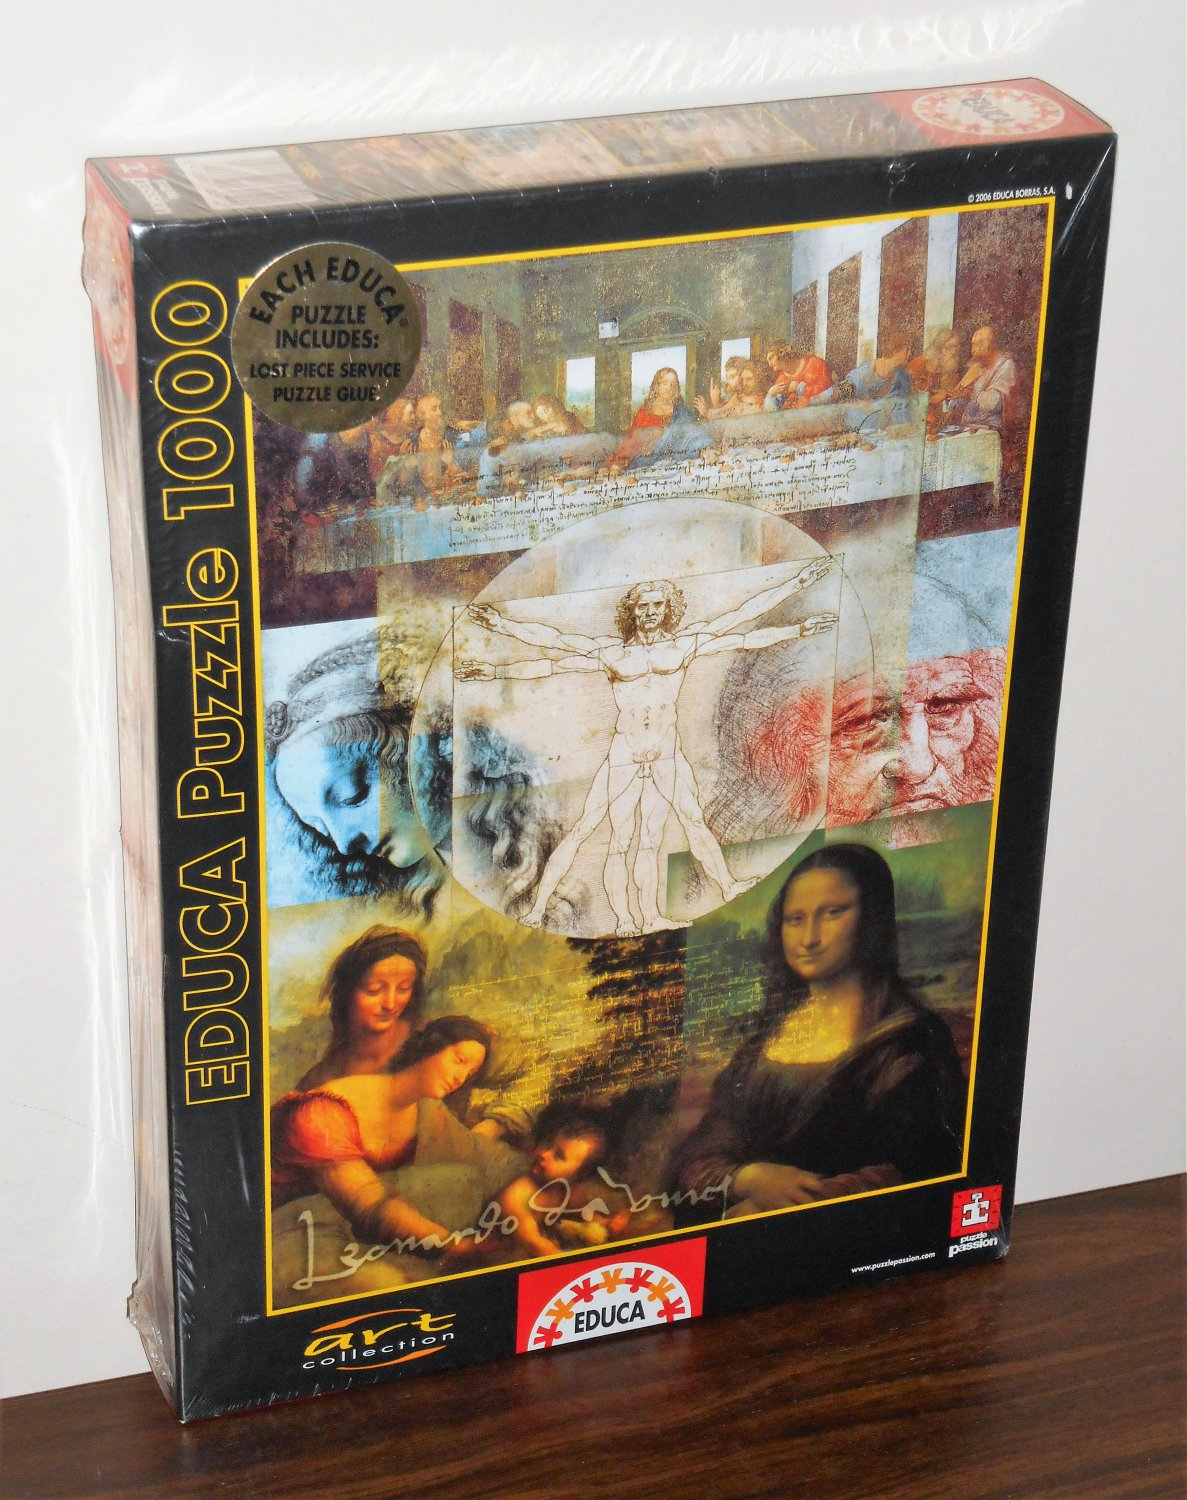 Leonardo DaVinci's Da Vinci's World 1000 Piece Jigsaw Puzzle Educa 13050 Art Collection NIB